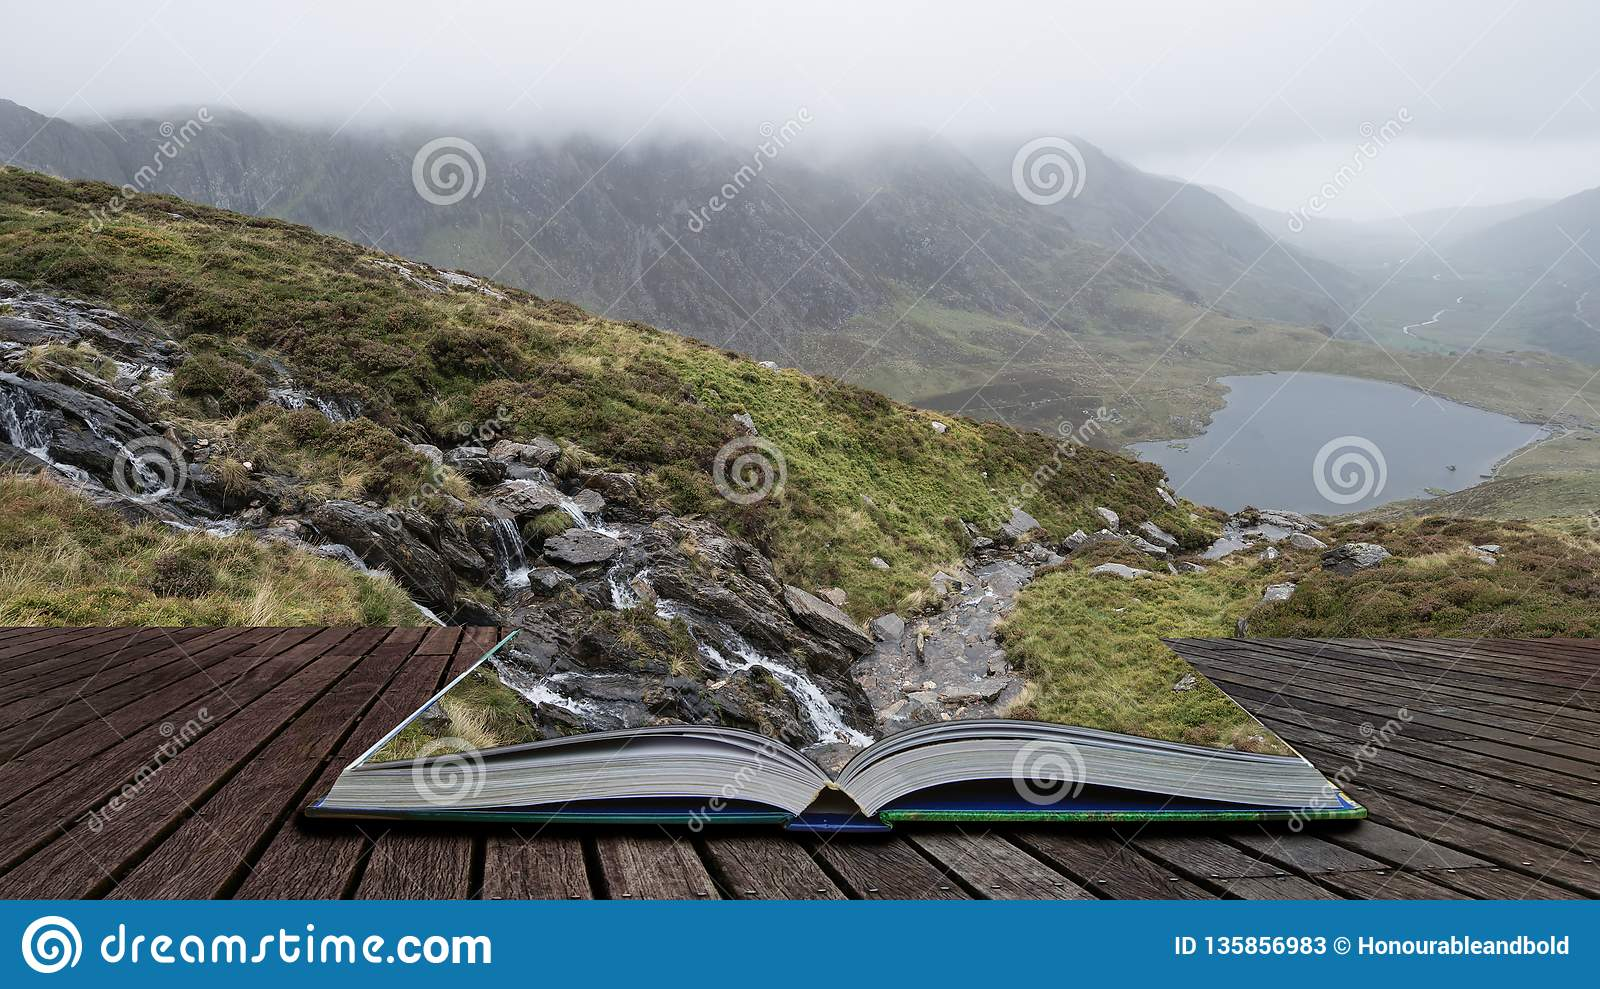 Landscape image of Llyn Idwal in Glyders mountain range in Snowdonia during heavy rainfall in Autumn coming out of pages of open